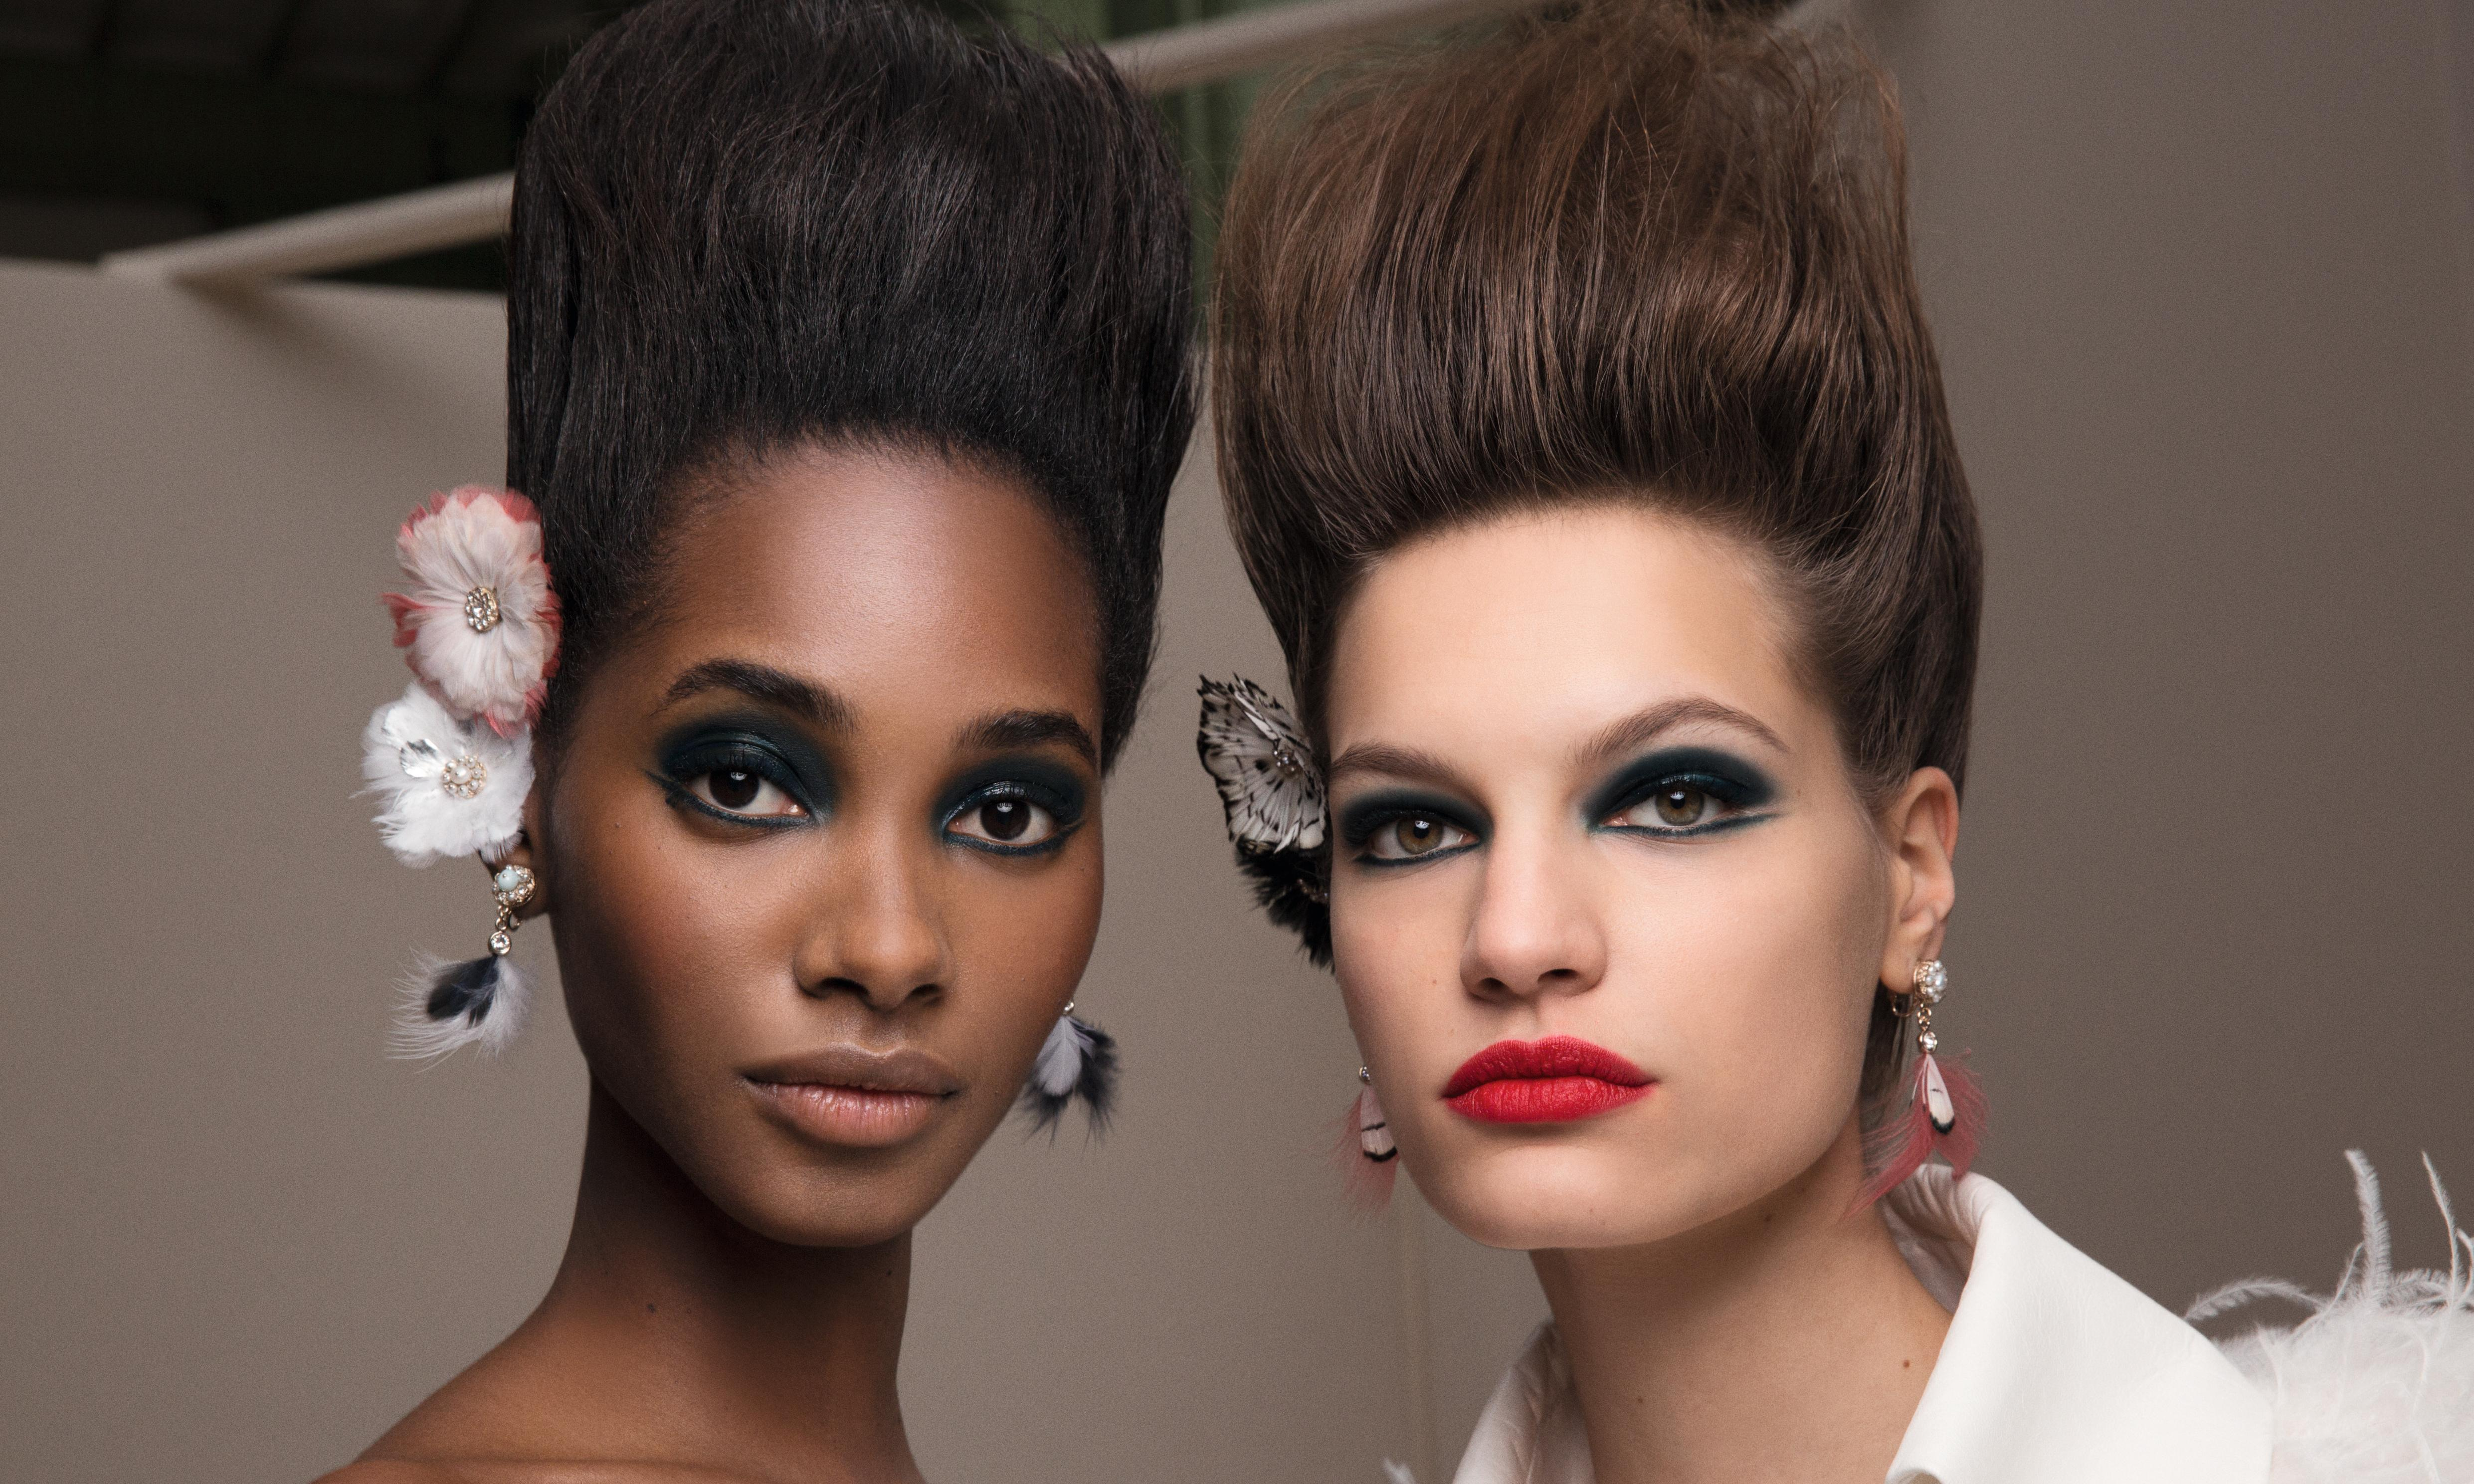 Beauty tips: putting the focus on both eyes and lips